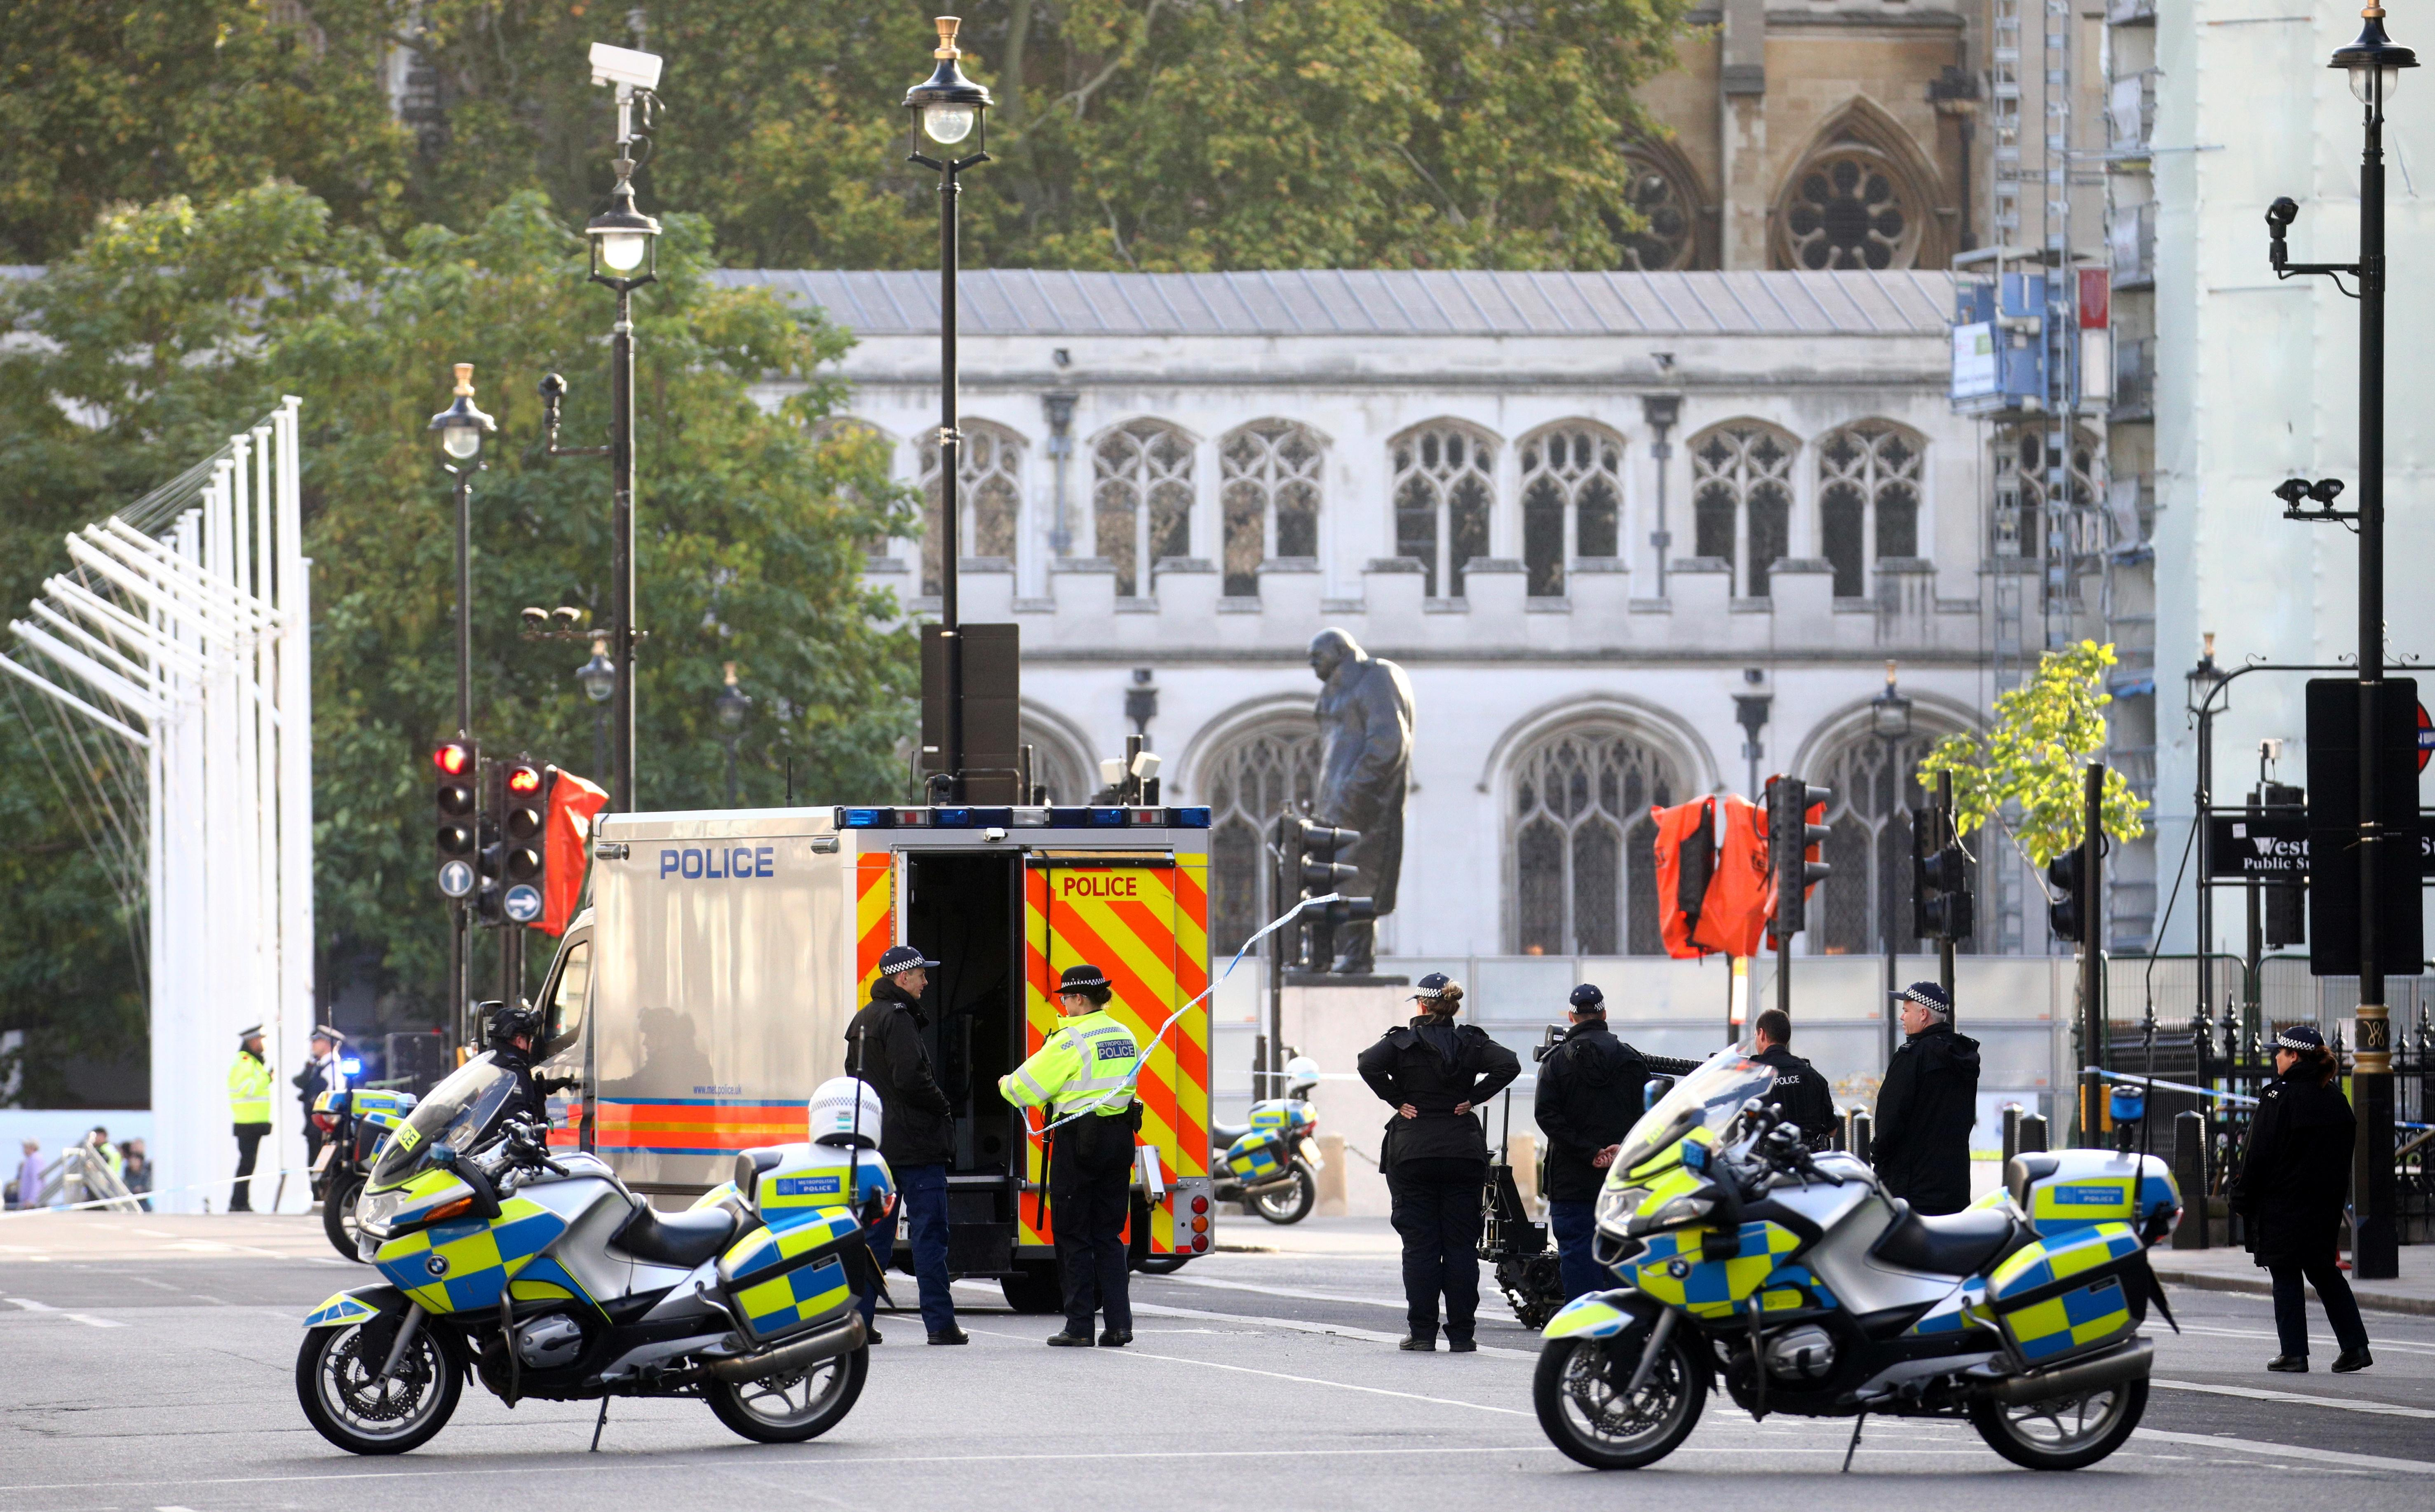 London police remove suspicious package from UK political district